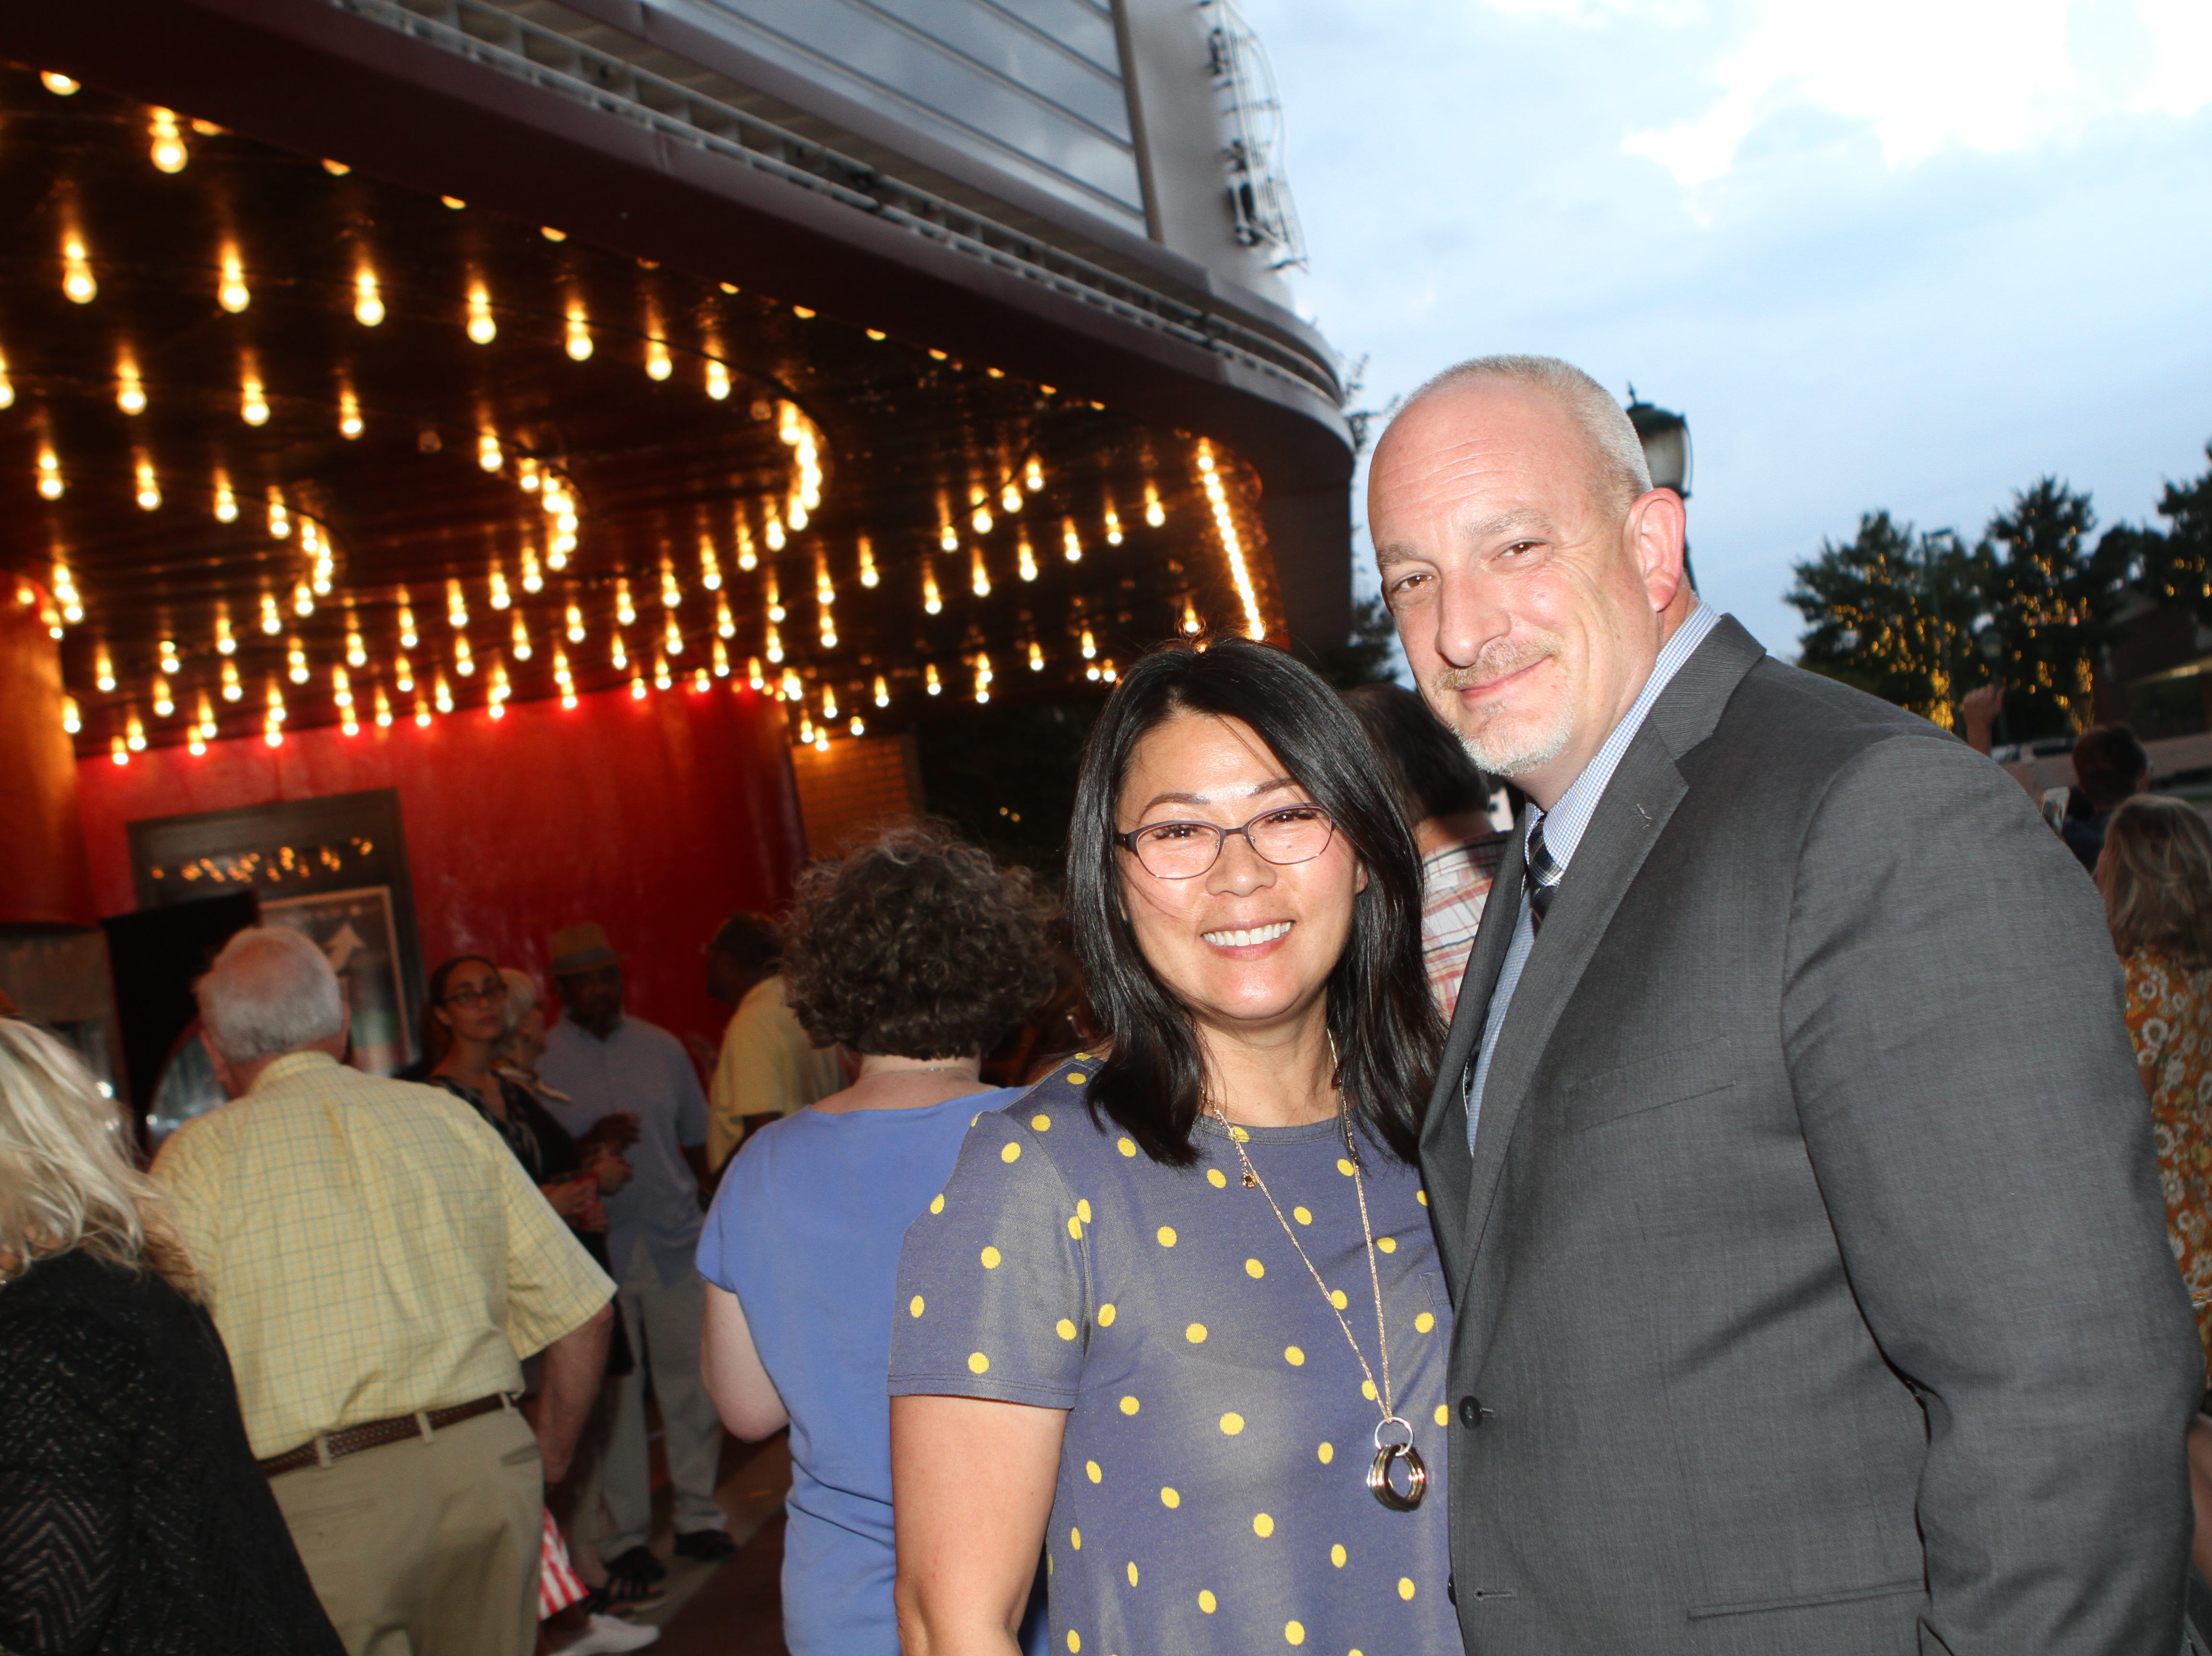 Su and Randy Whetsell at the Roxy Regional Theatre for the United Way 2018 campaign fundraising event Thursday night.